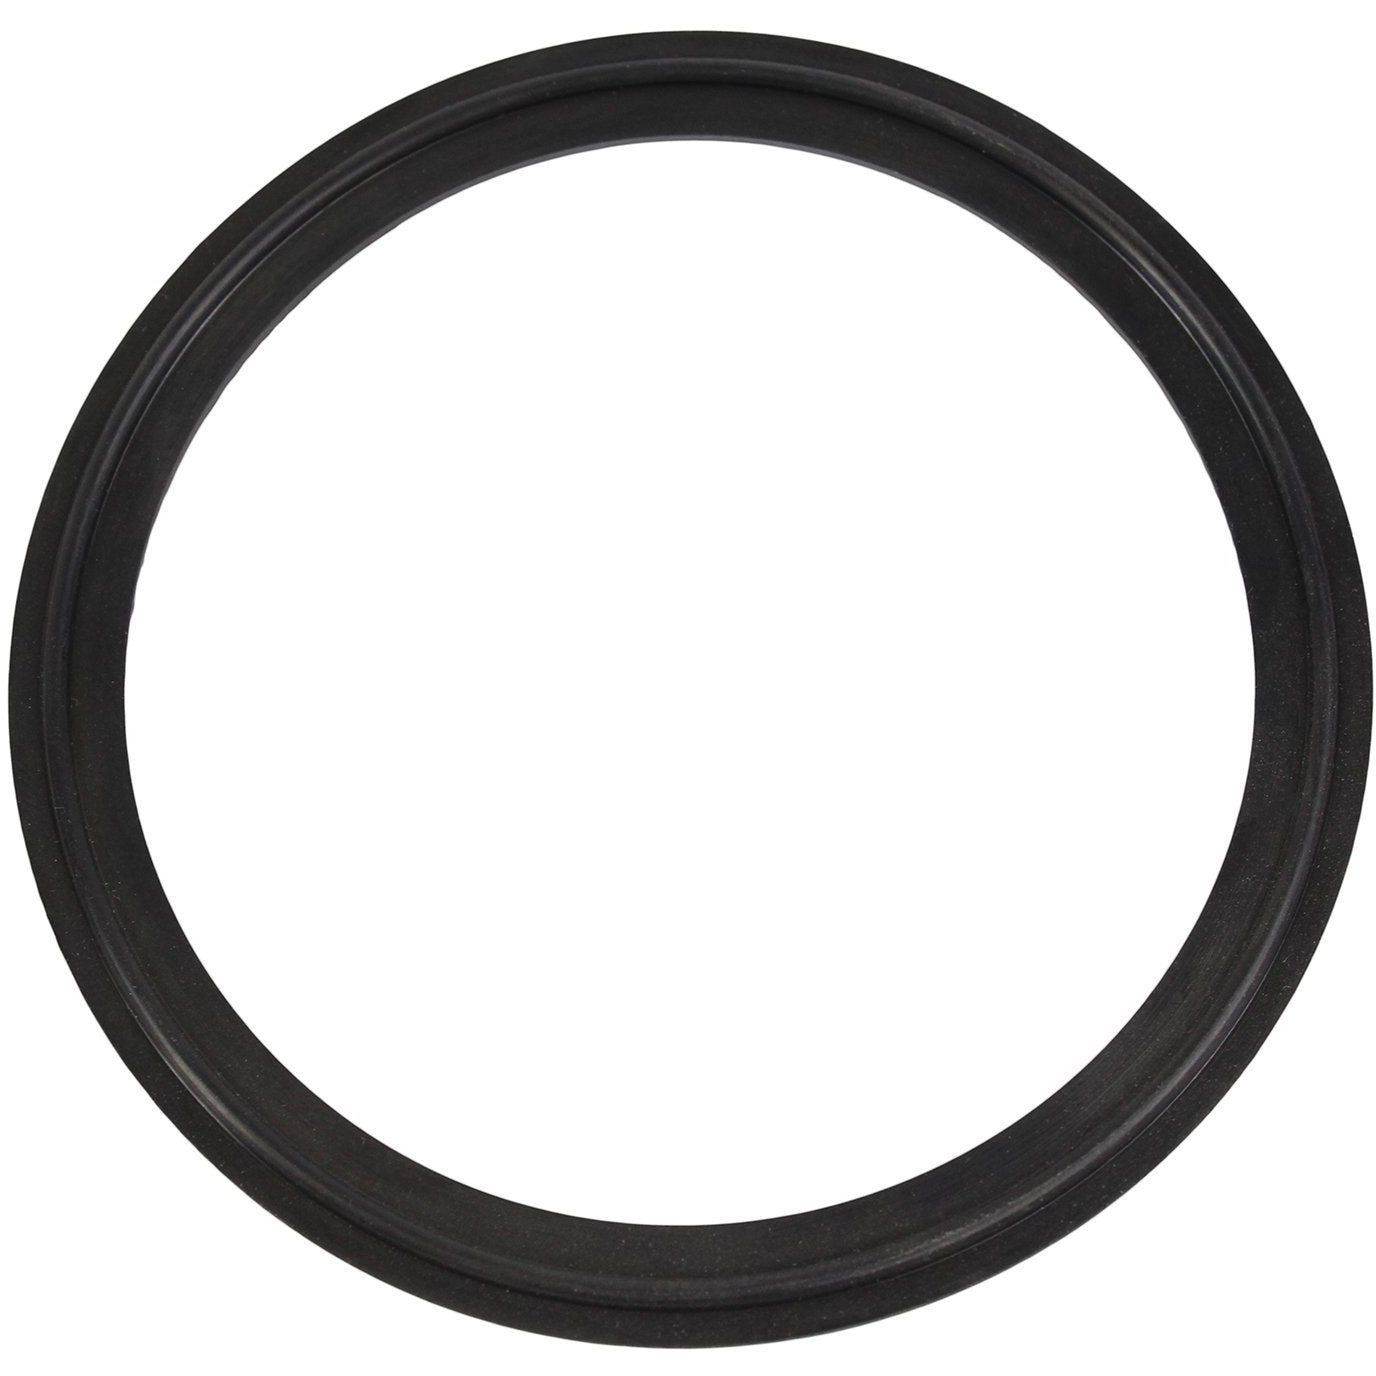 BUNA-N Tri-Clamp Gaskets Shop Brands BVV